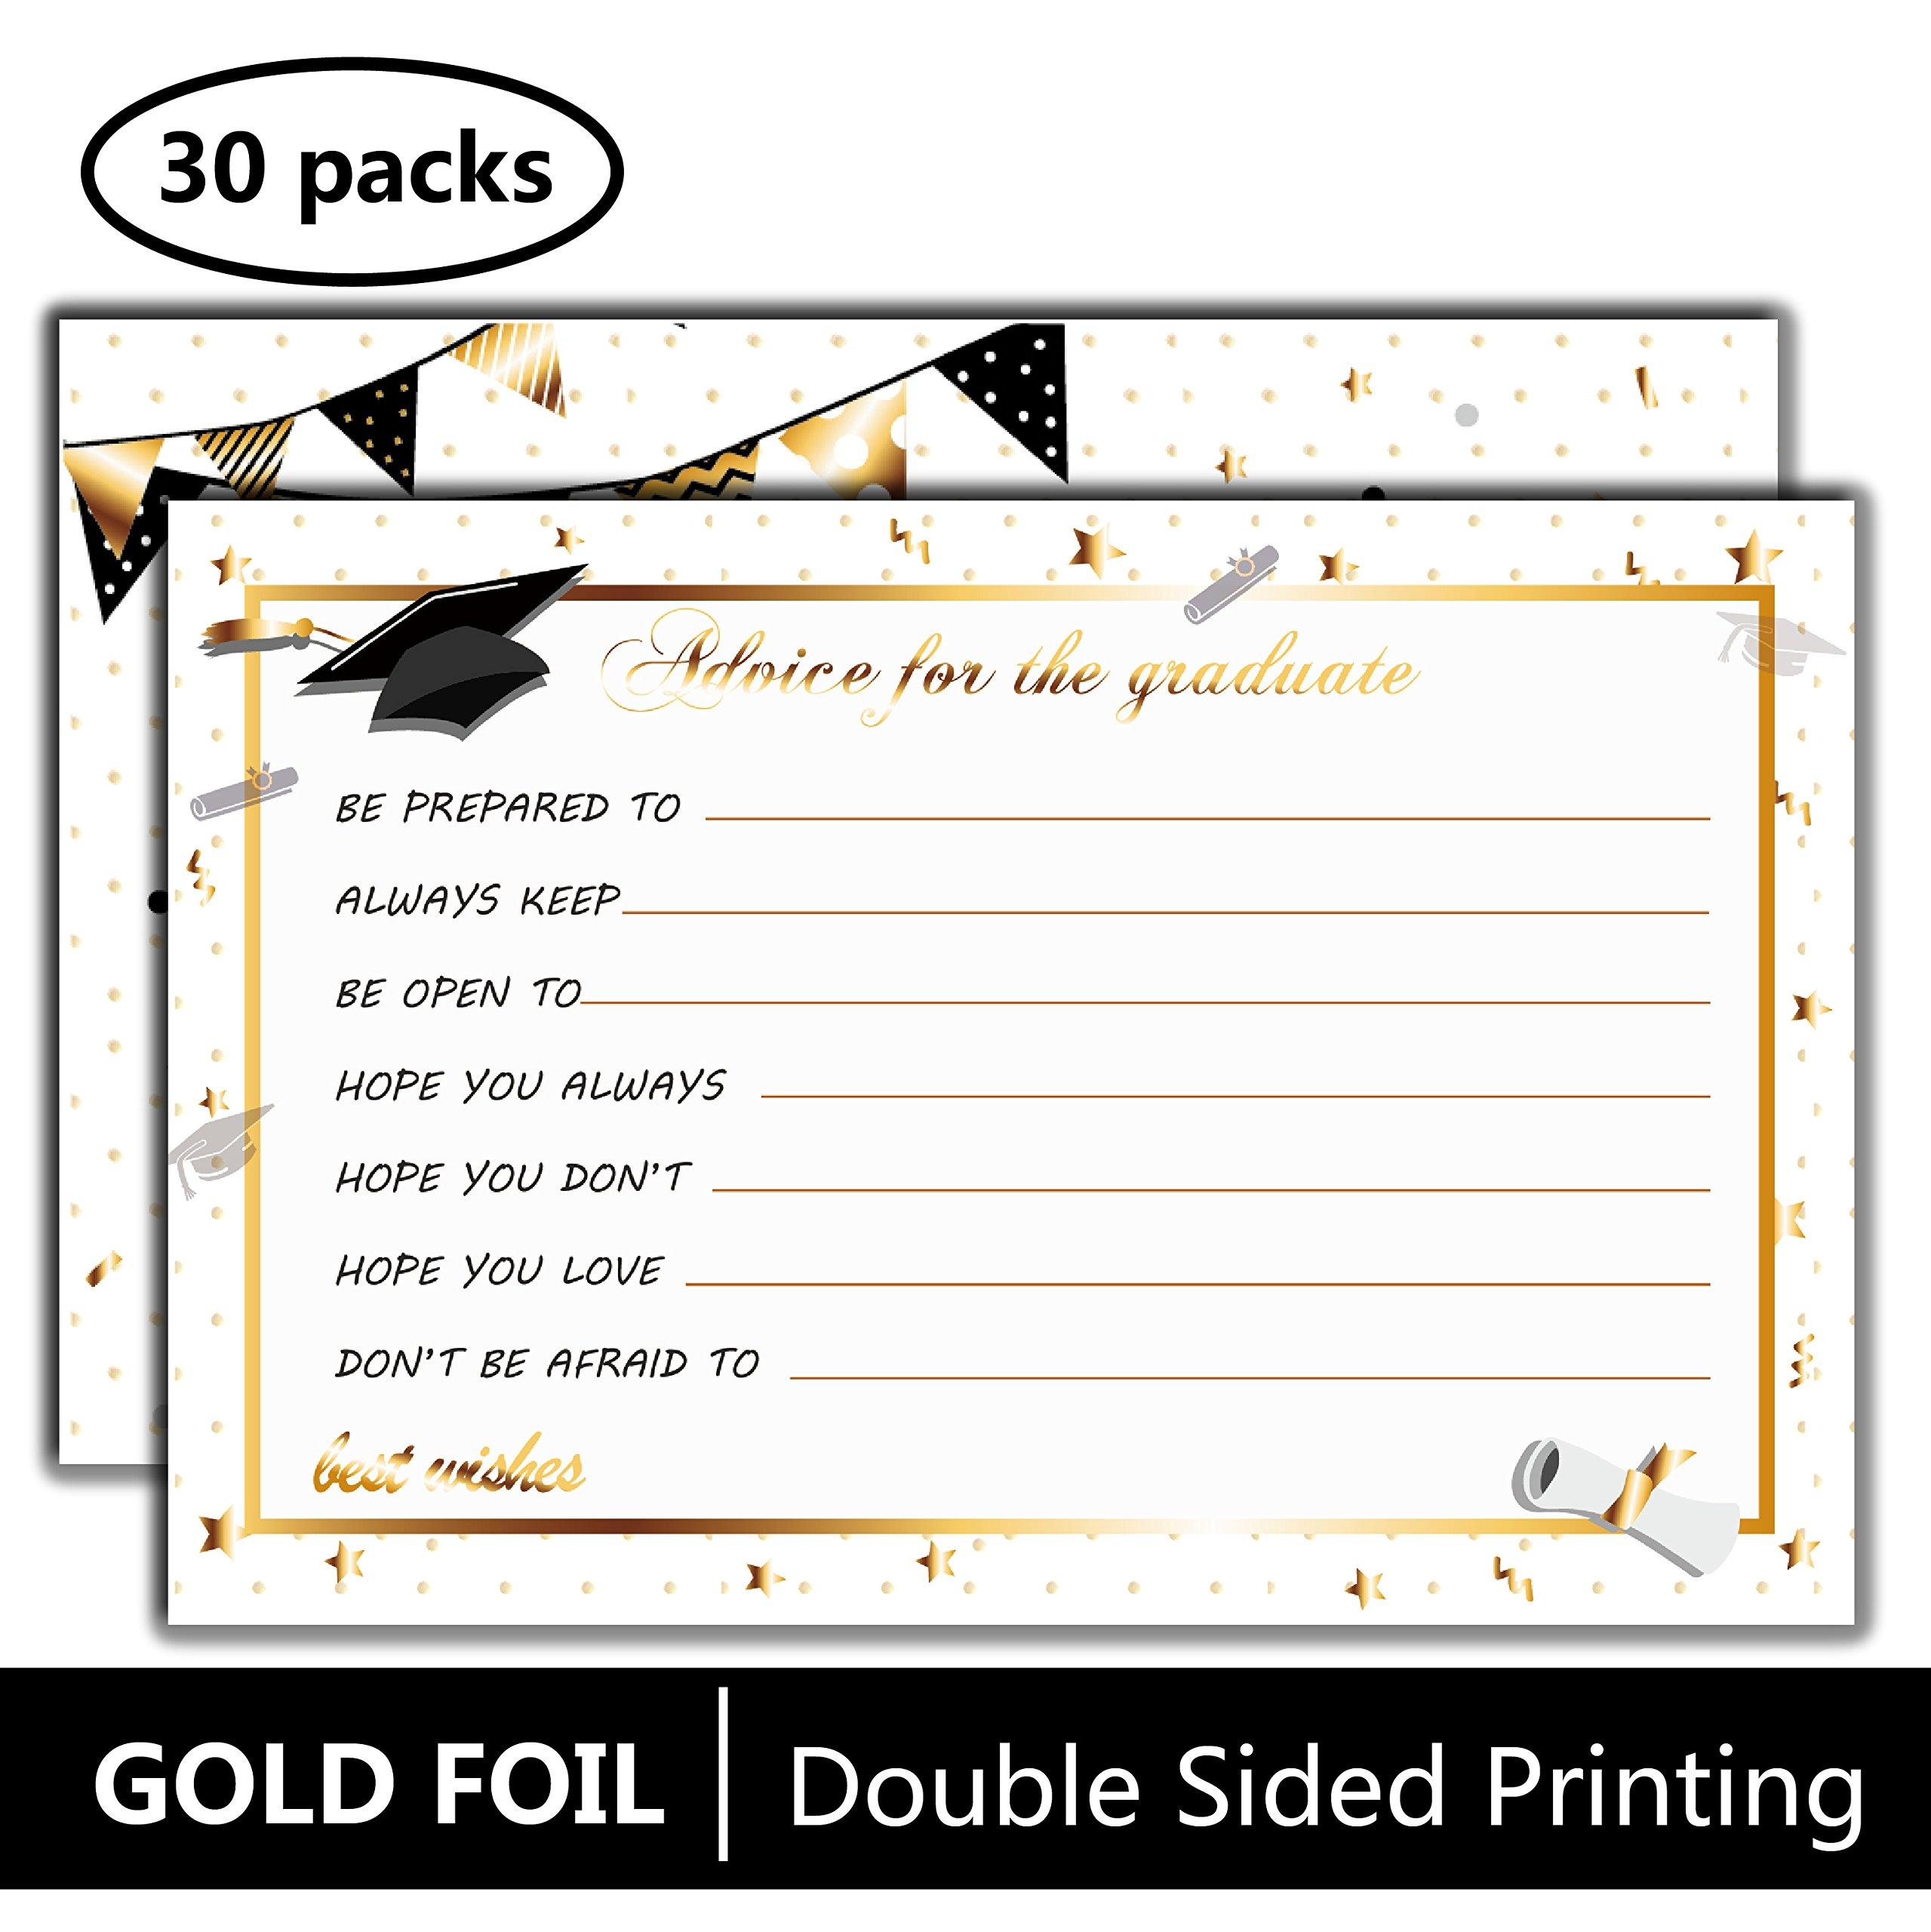 Graduation Party Advice Cards for Graduate-30 Pcs with Gold Foil Embossed-Grad Supplies,Favor,Decoration,Activities,Invitation,Game-Word of Wisdom for Class of 2018 High School,College,University